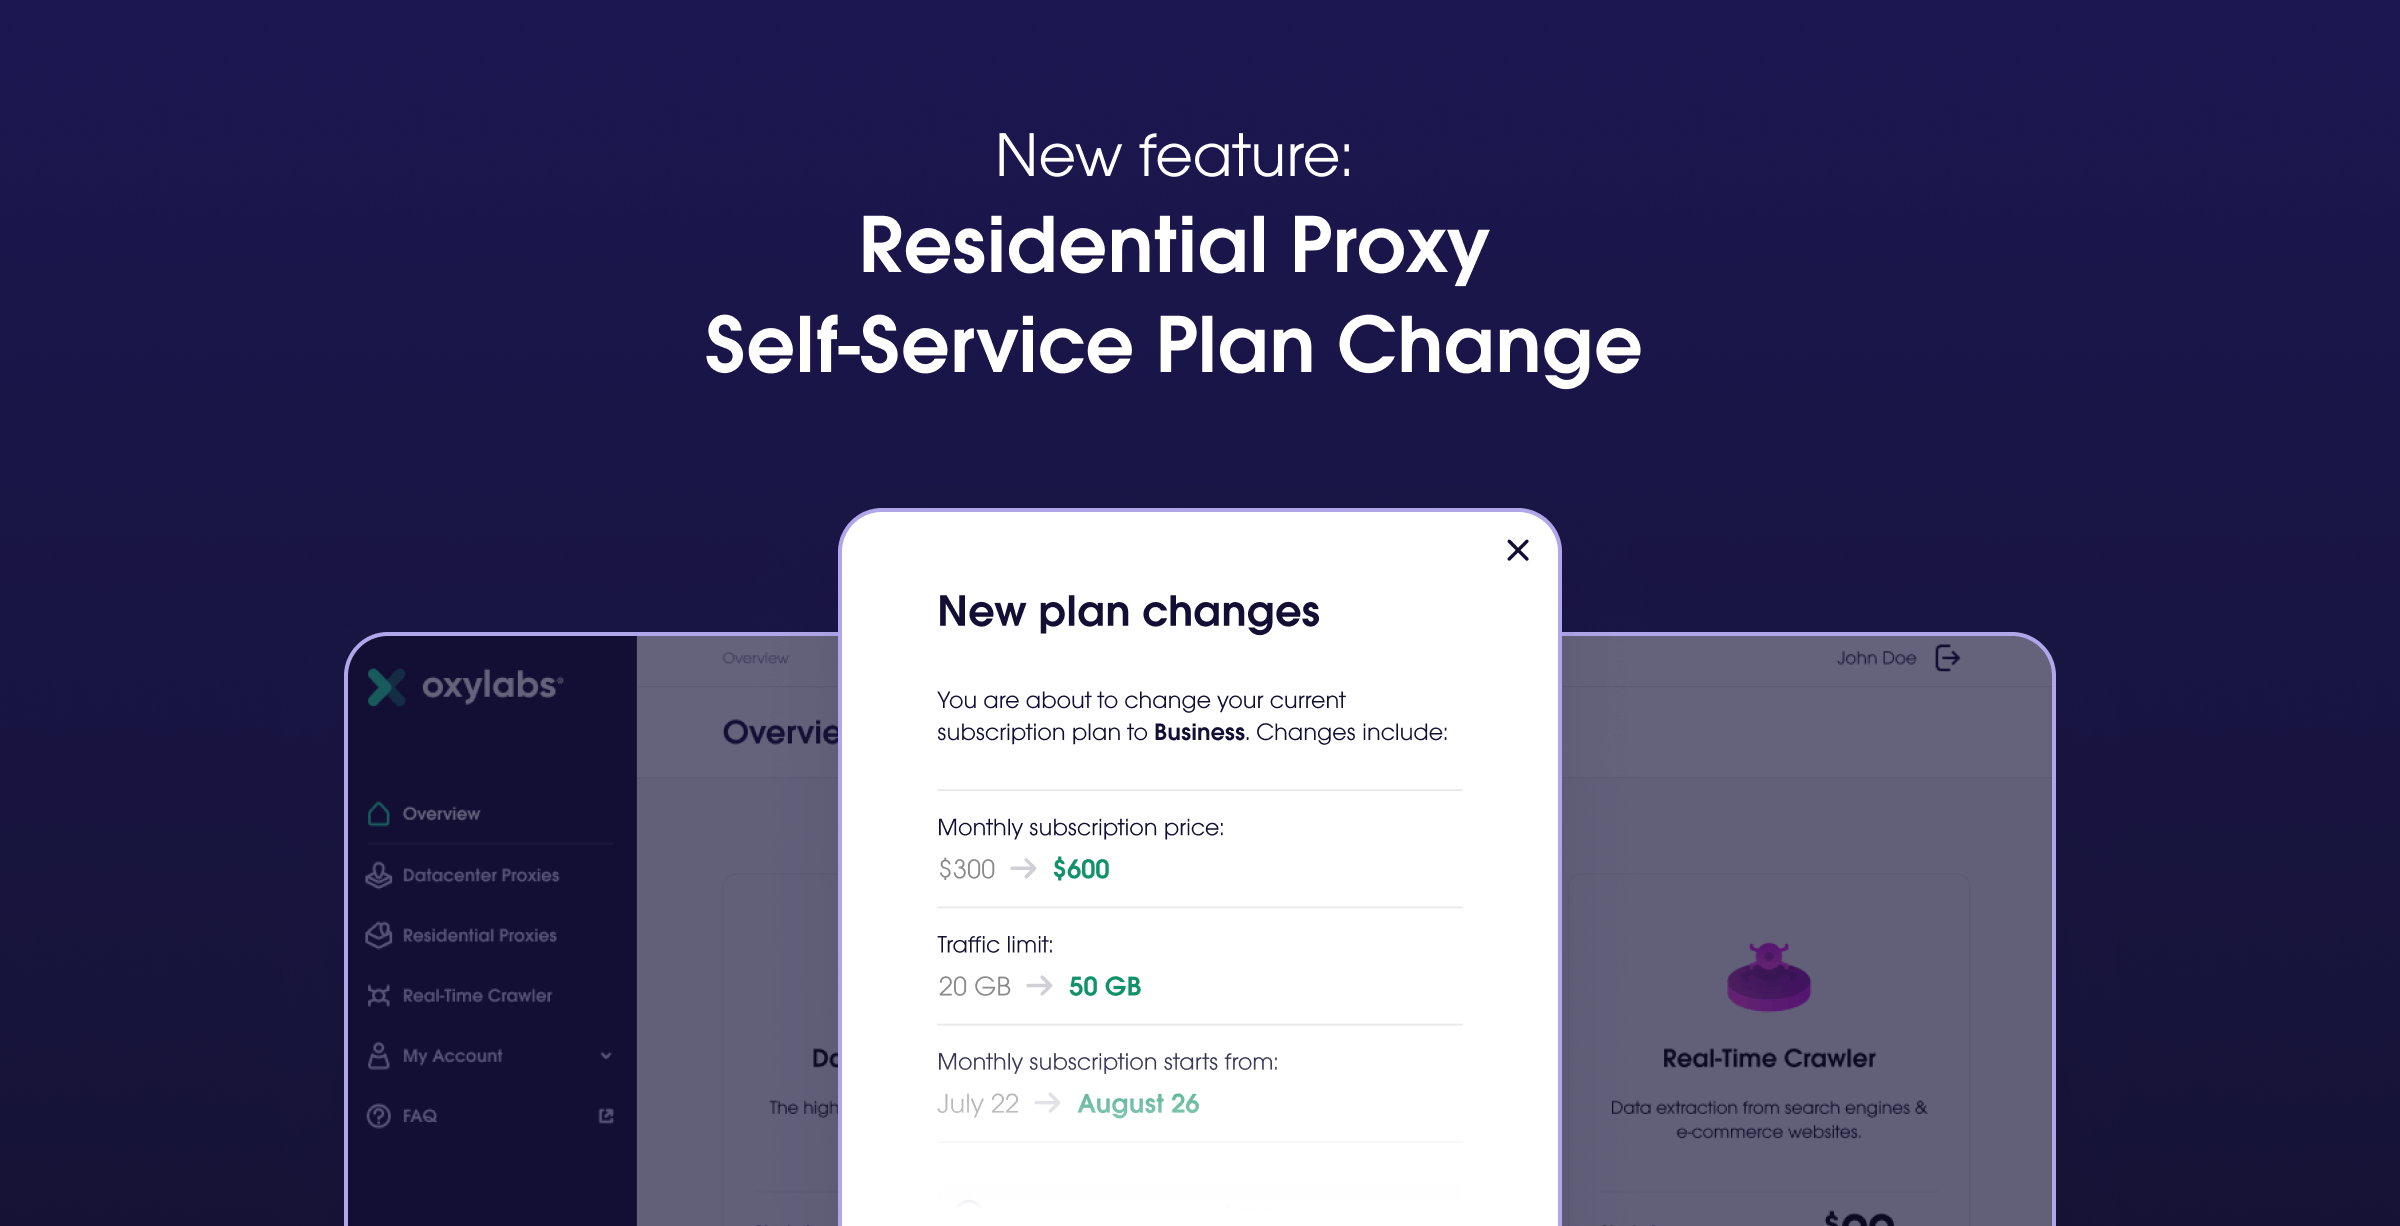 Residential Proxy Self-Service Update: Easily Change Your Plan!